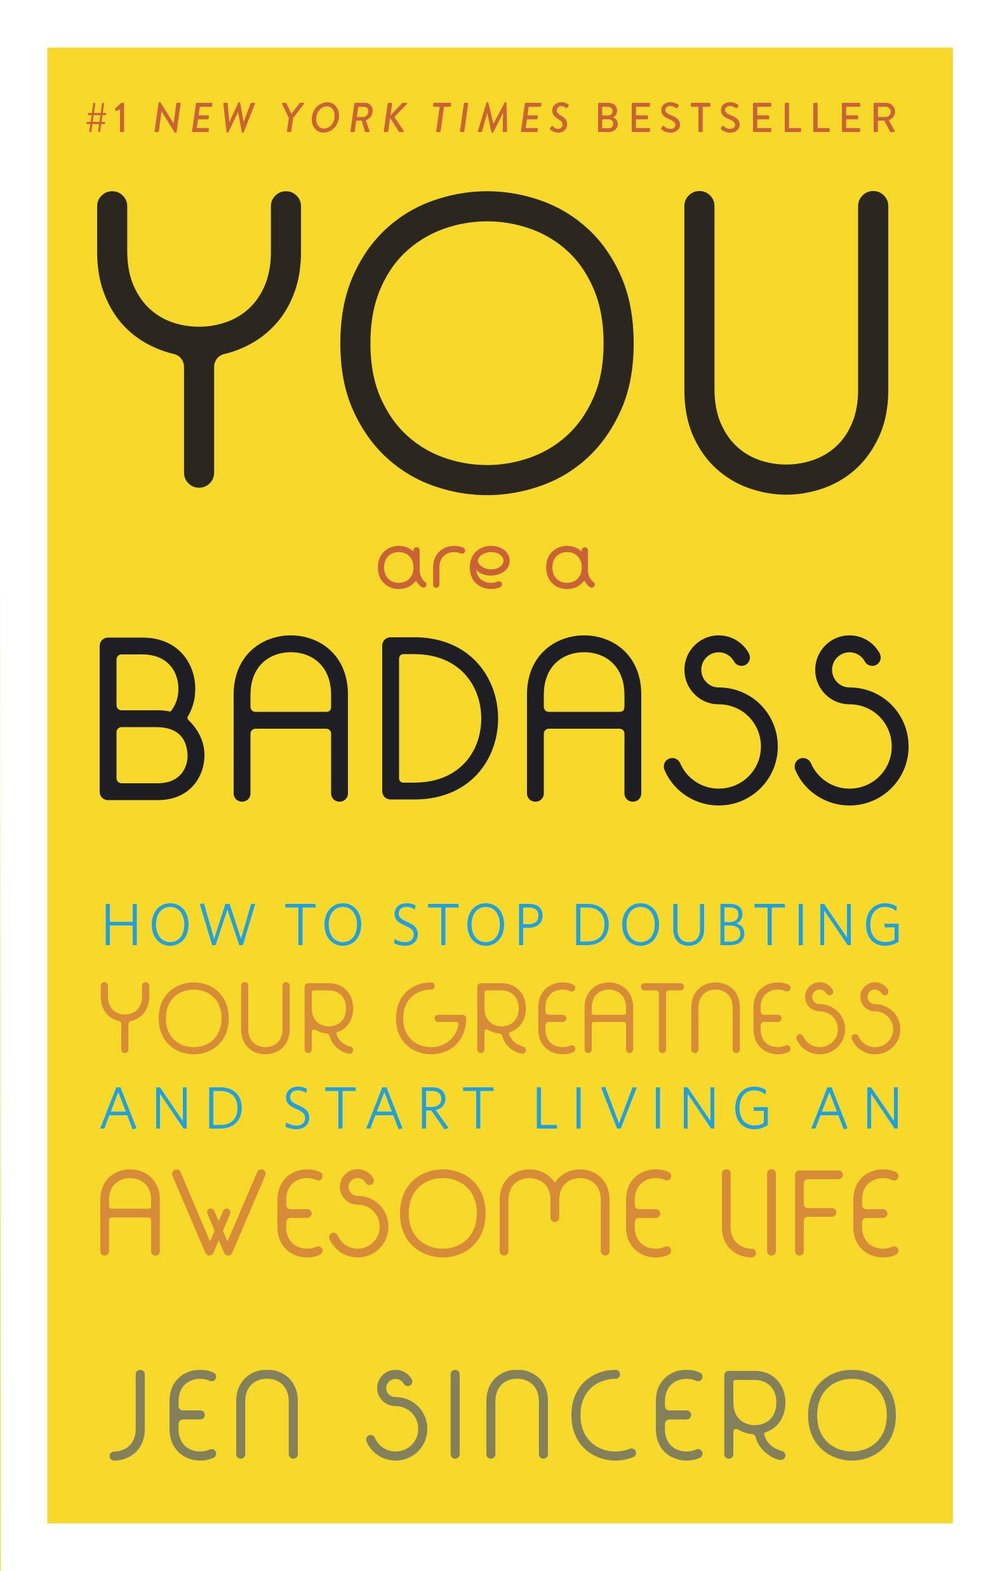 Your Are a Badass - Jen Sincero - Tap into source energy, truth, and gratitude for badassery. Jen's words will want to make you drop kick life in the face.